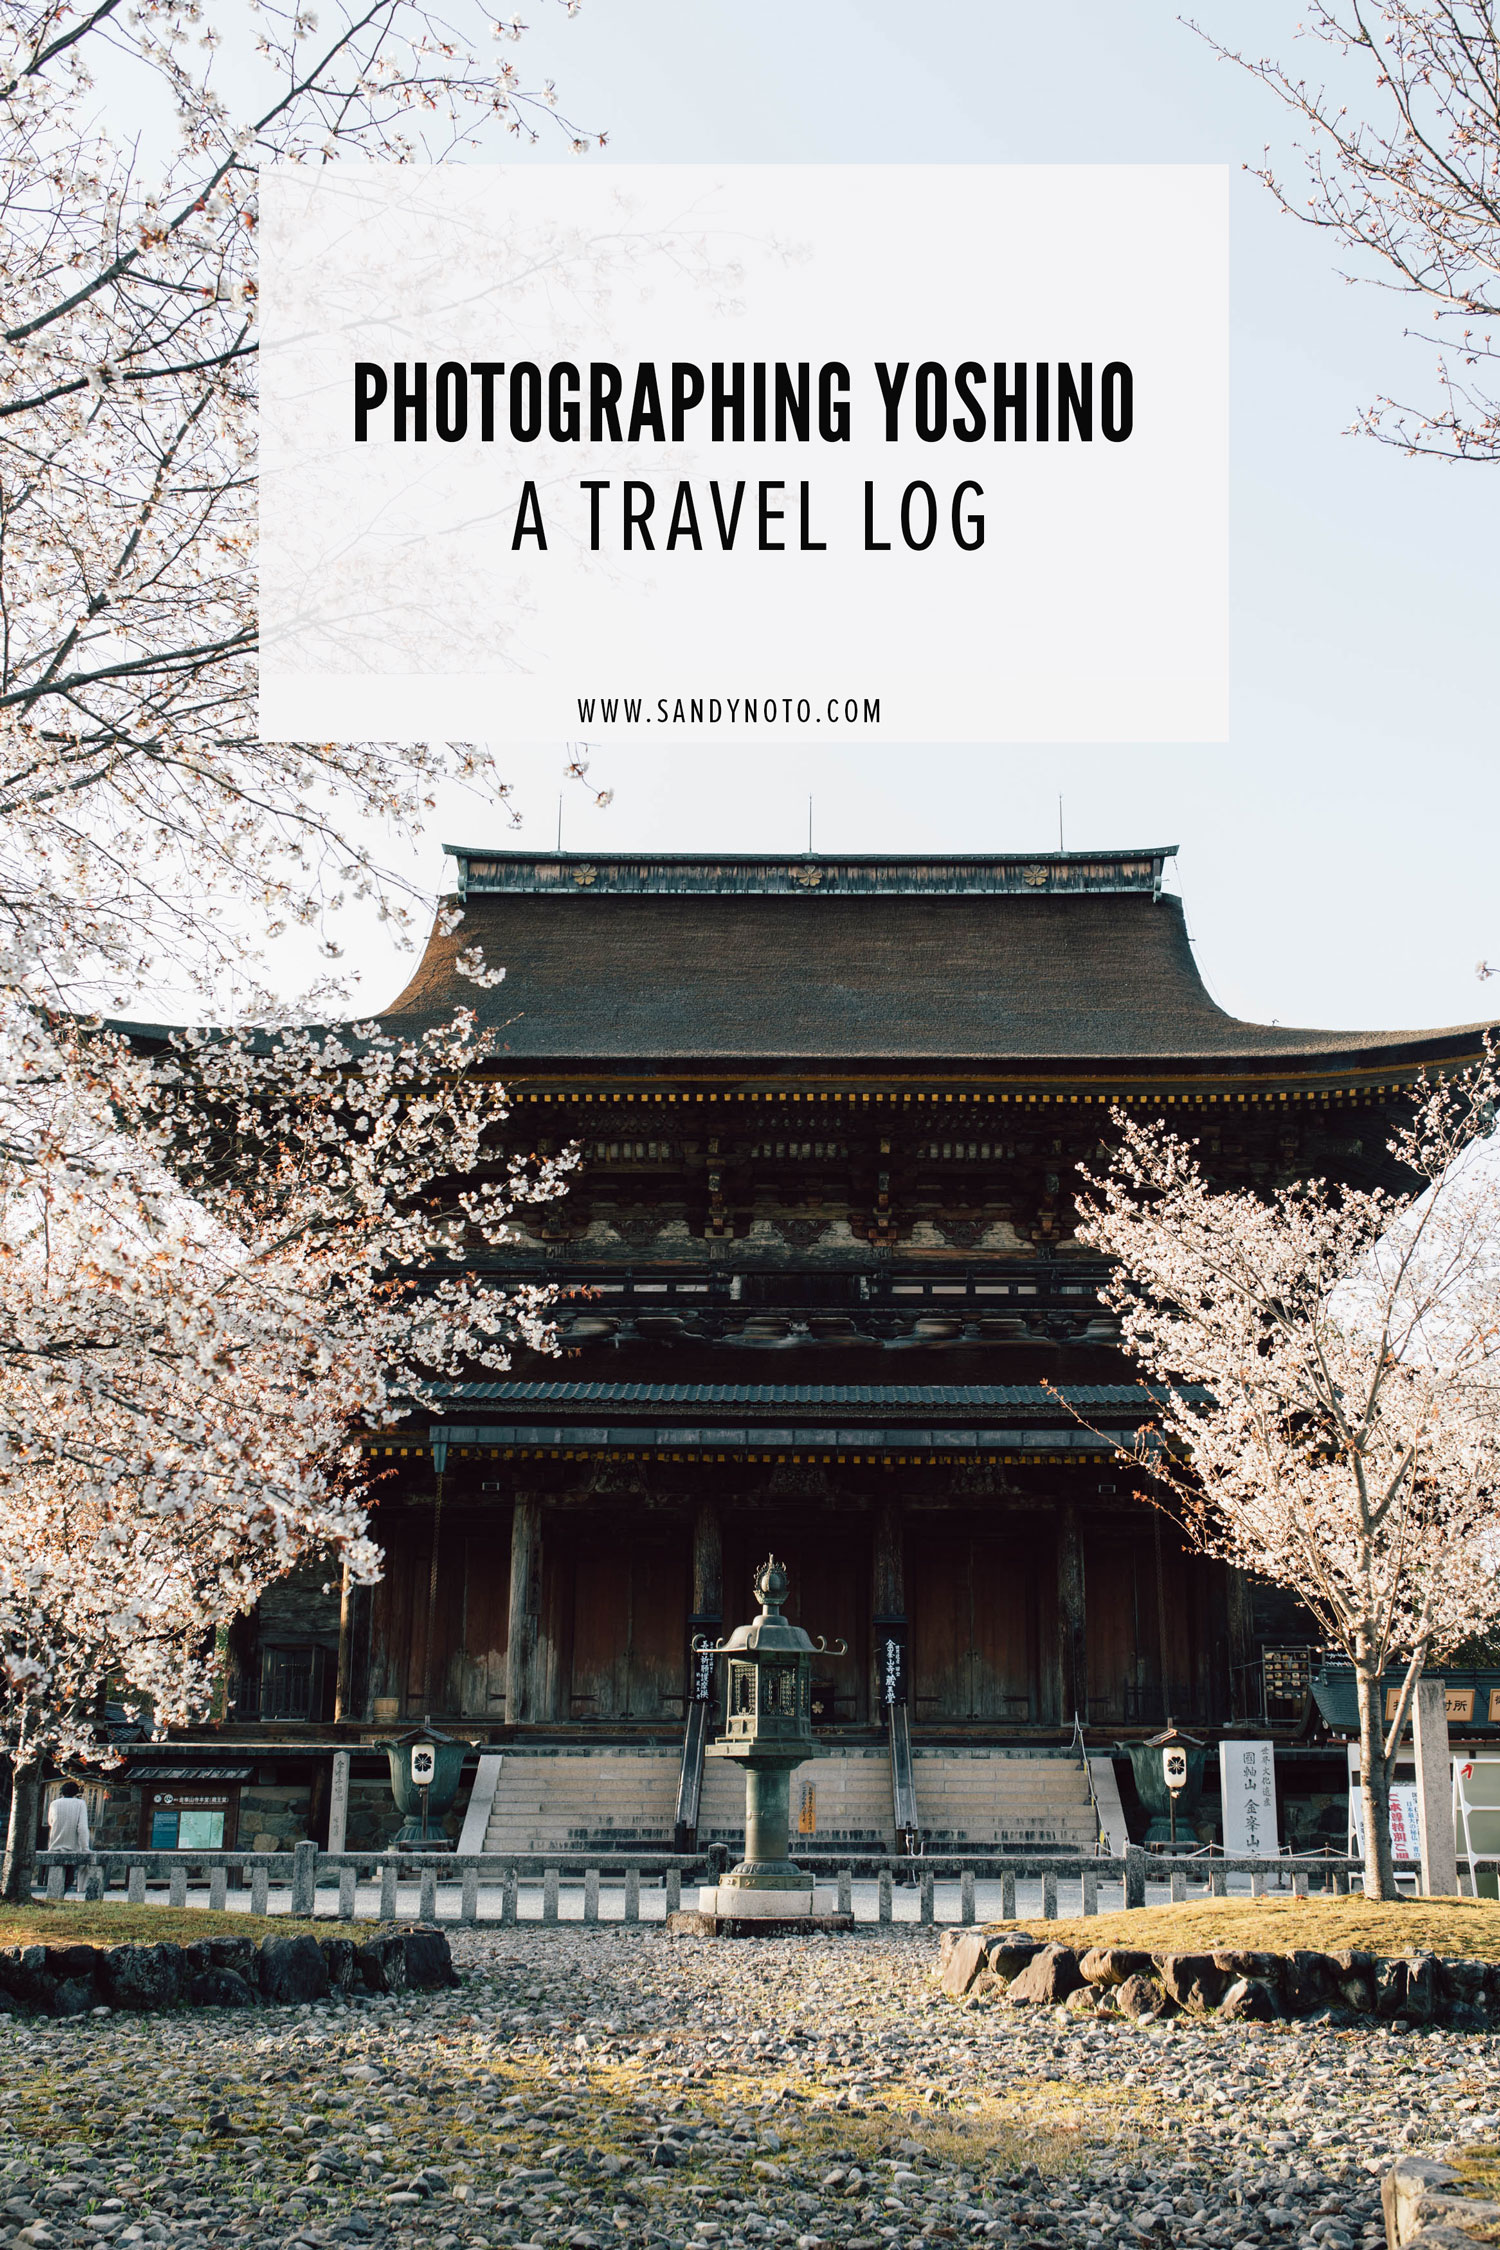 Photographing Yoshino, Japan